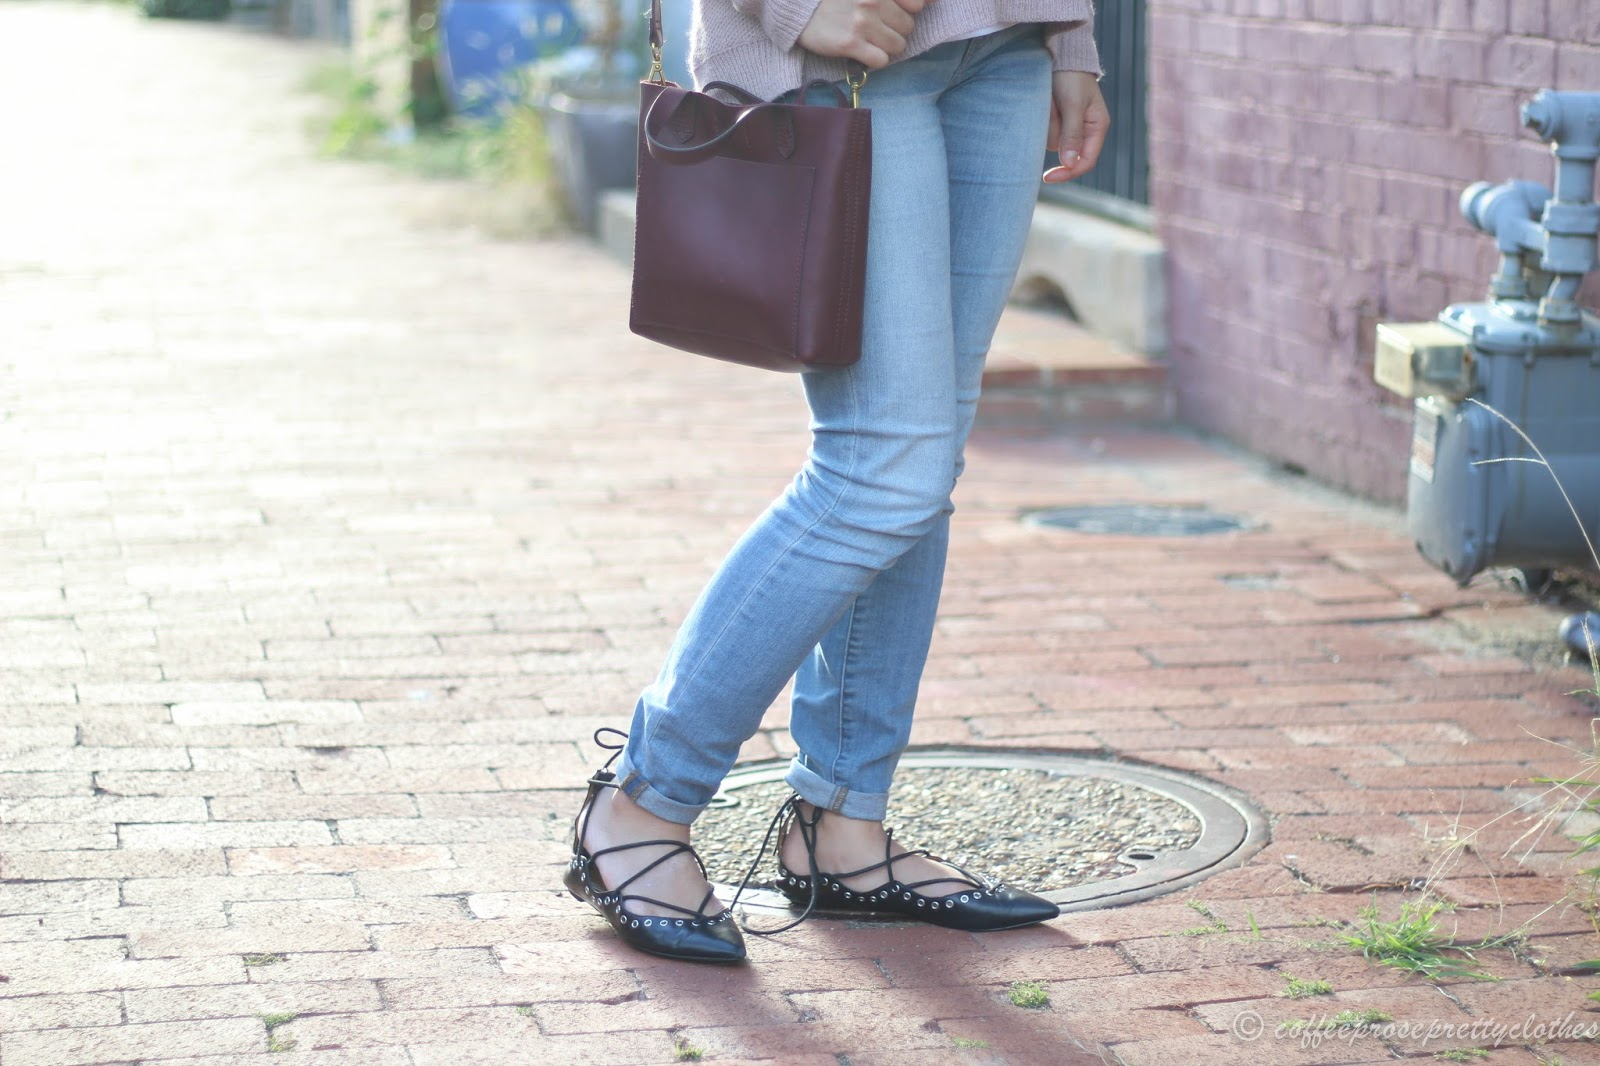 Cross back sweater Madewell, Zara Lace Up Flats, Madewell 8 inch jeans, Madewell Small Transport Crossbody